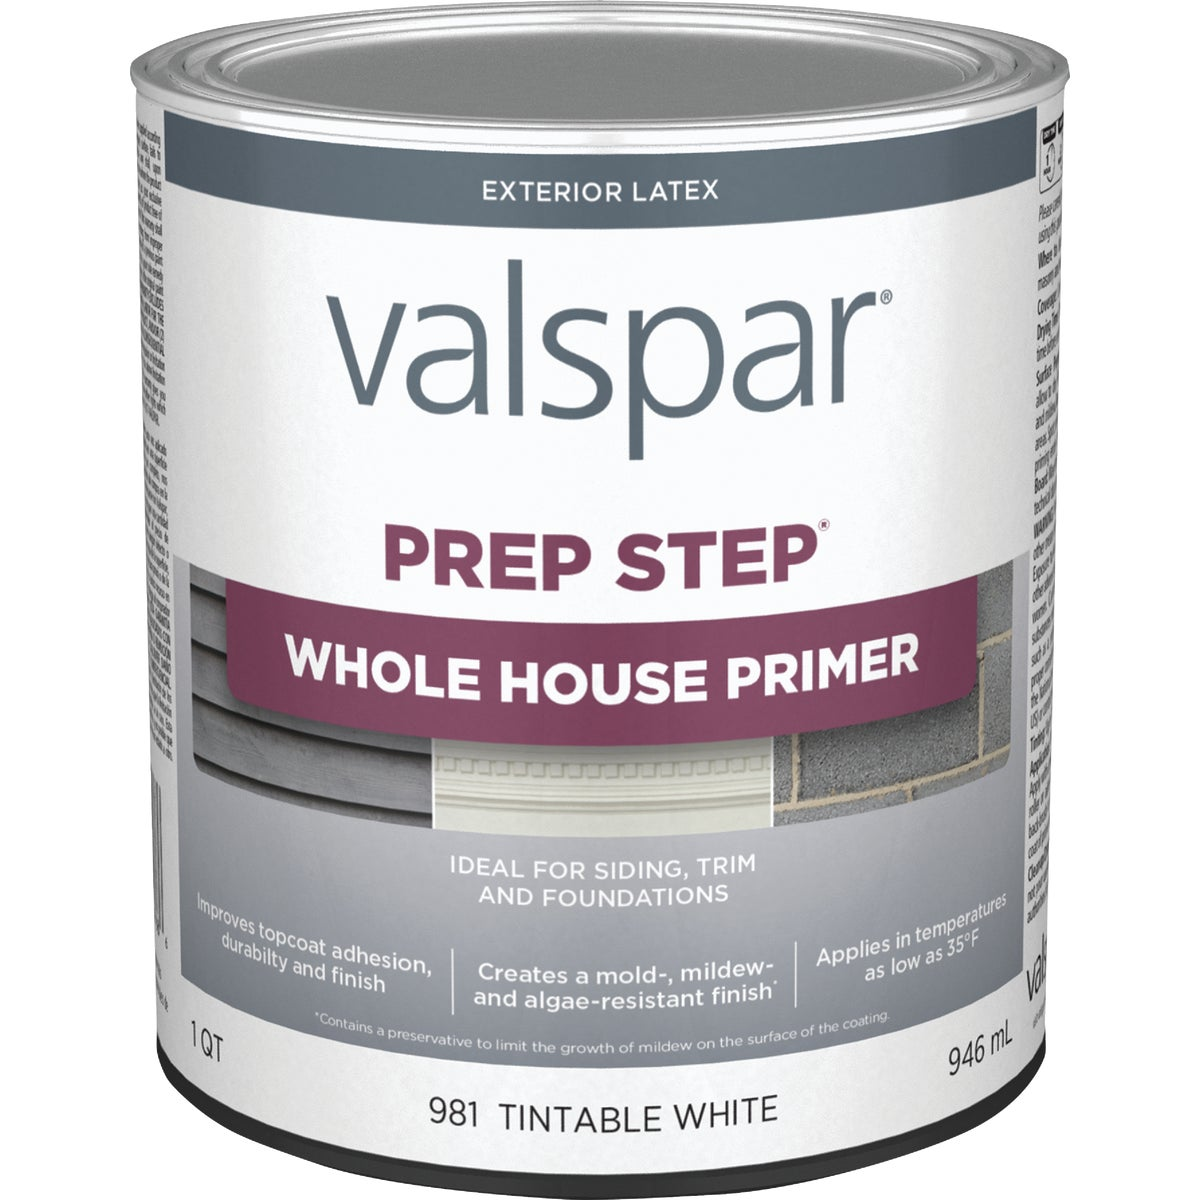 EXT LATEX WOOD PRIMER - 044.0000981.005 by Valspar Corp